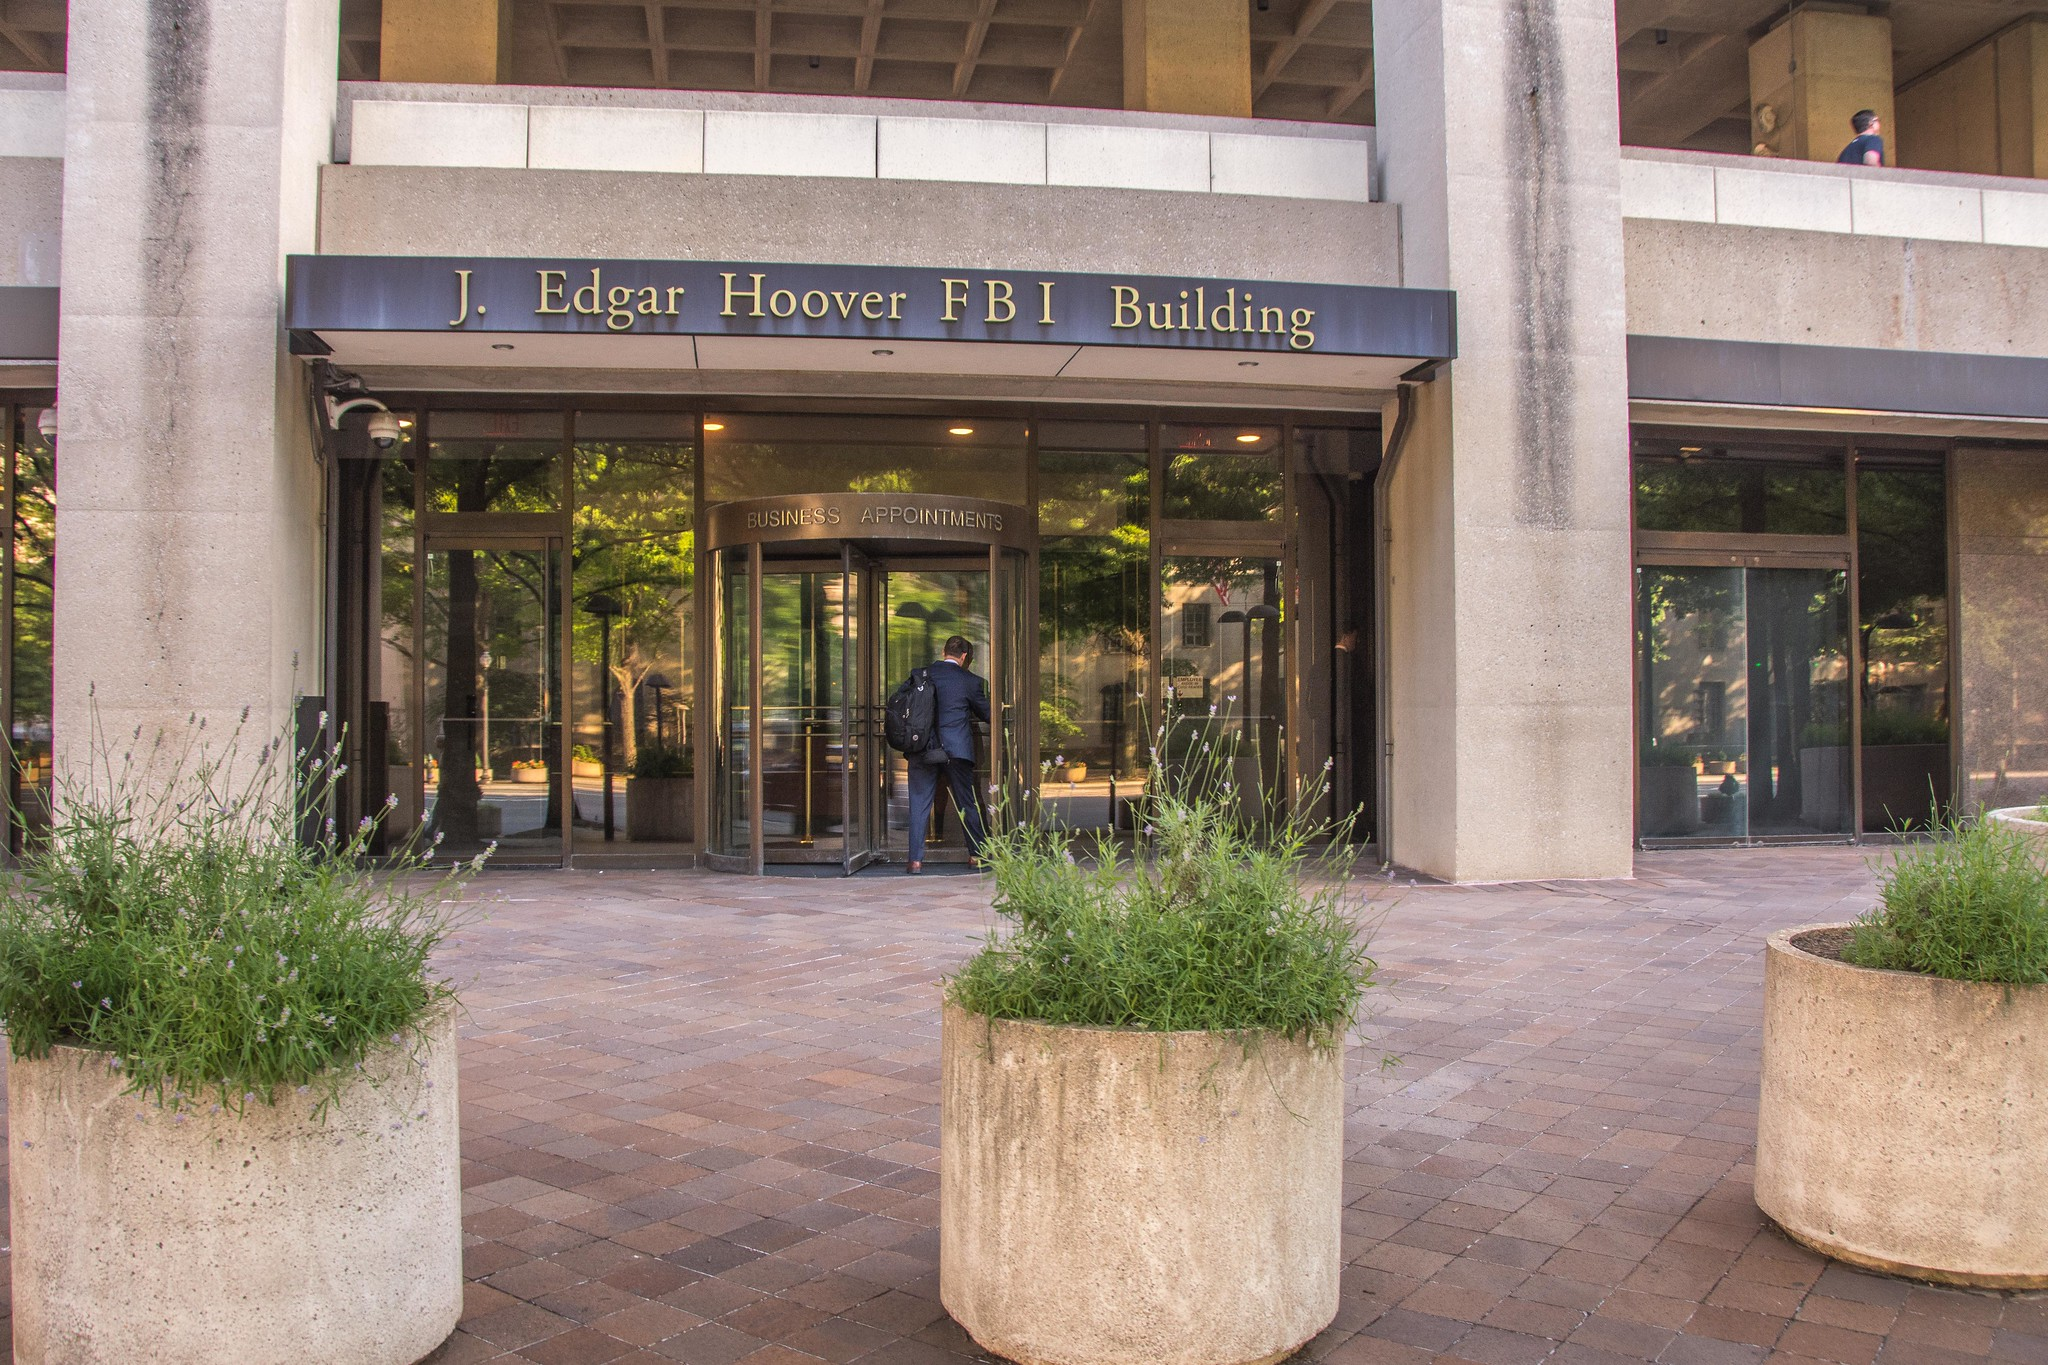 Creative Commons photo of the J. Edgar Hoover building in Washington, D.C.